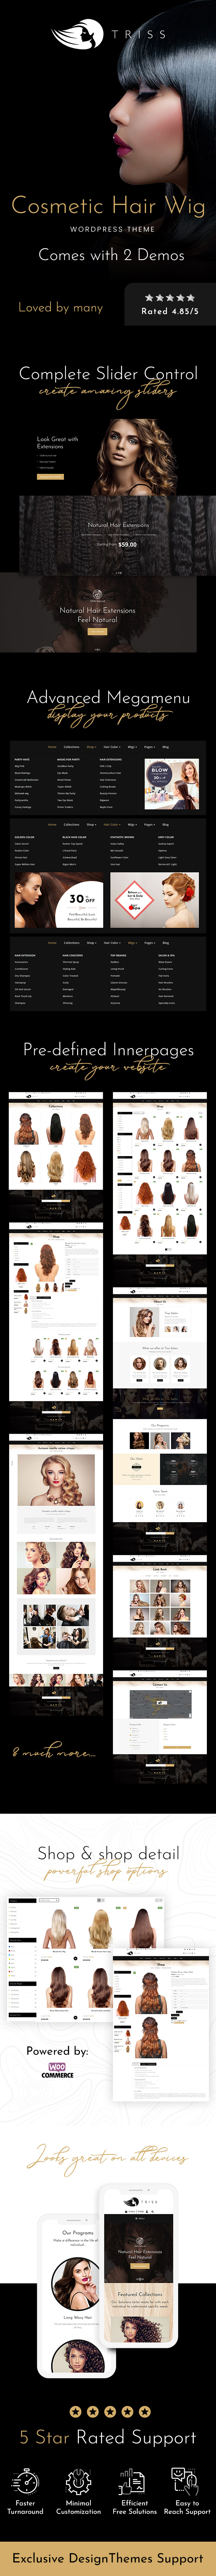 Triss - Salon, Hair Extension & Beauty Shop WooCommerce Theme - 1